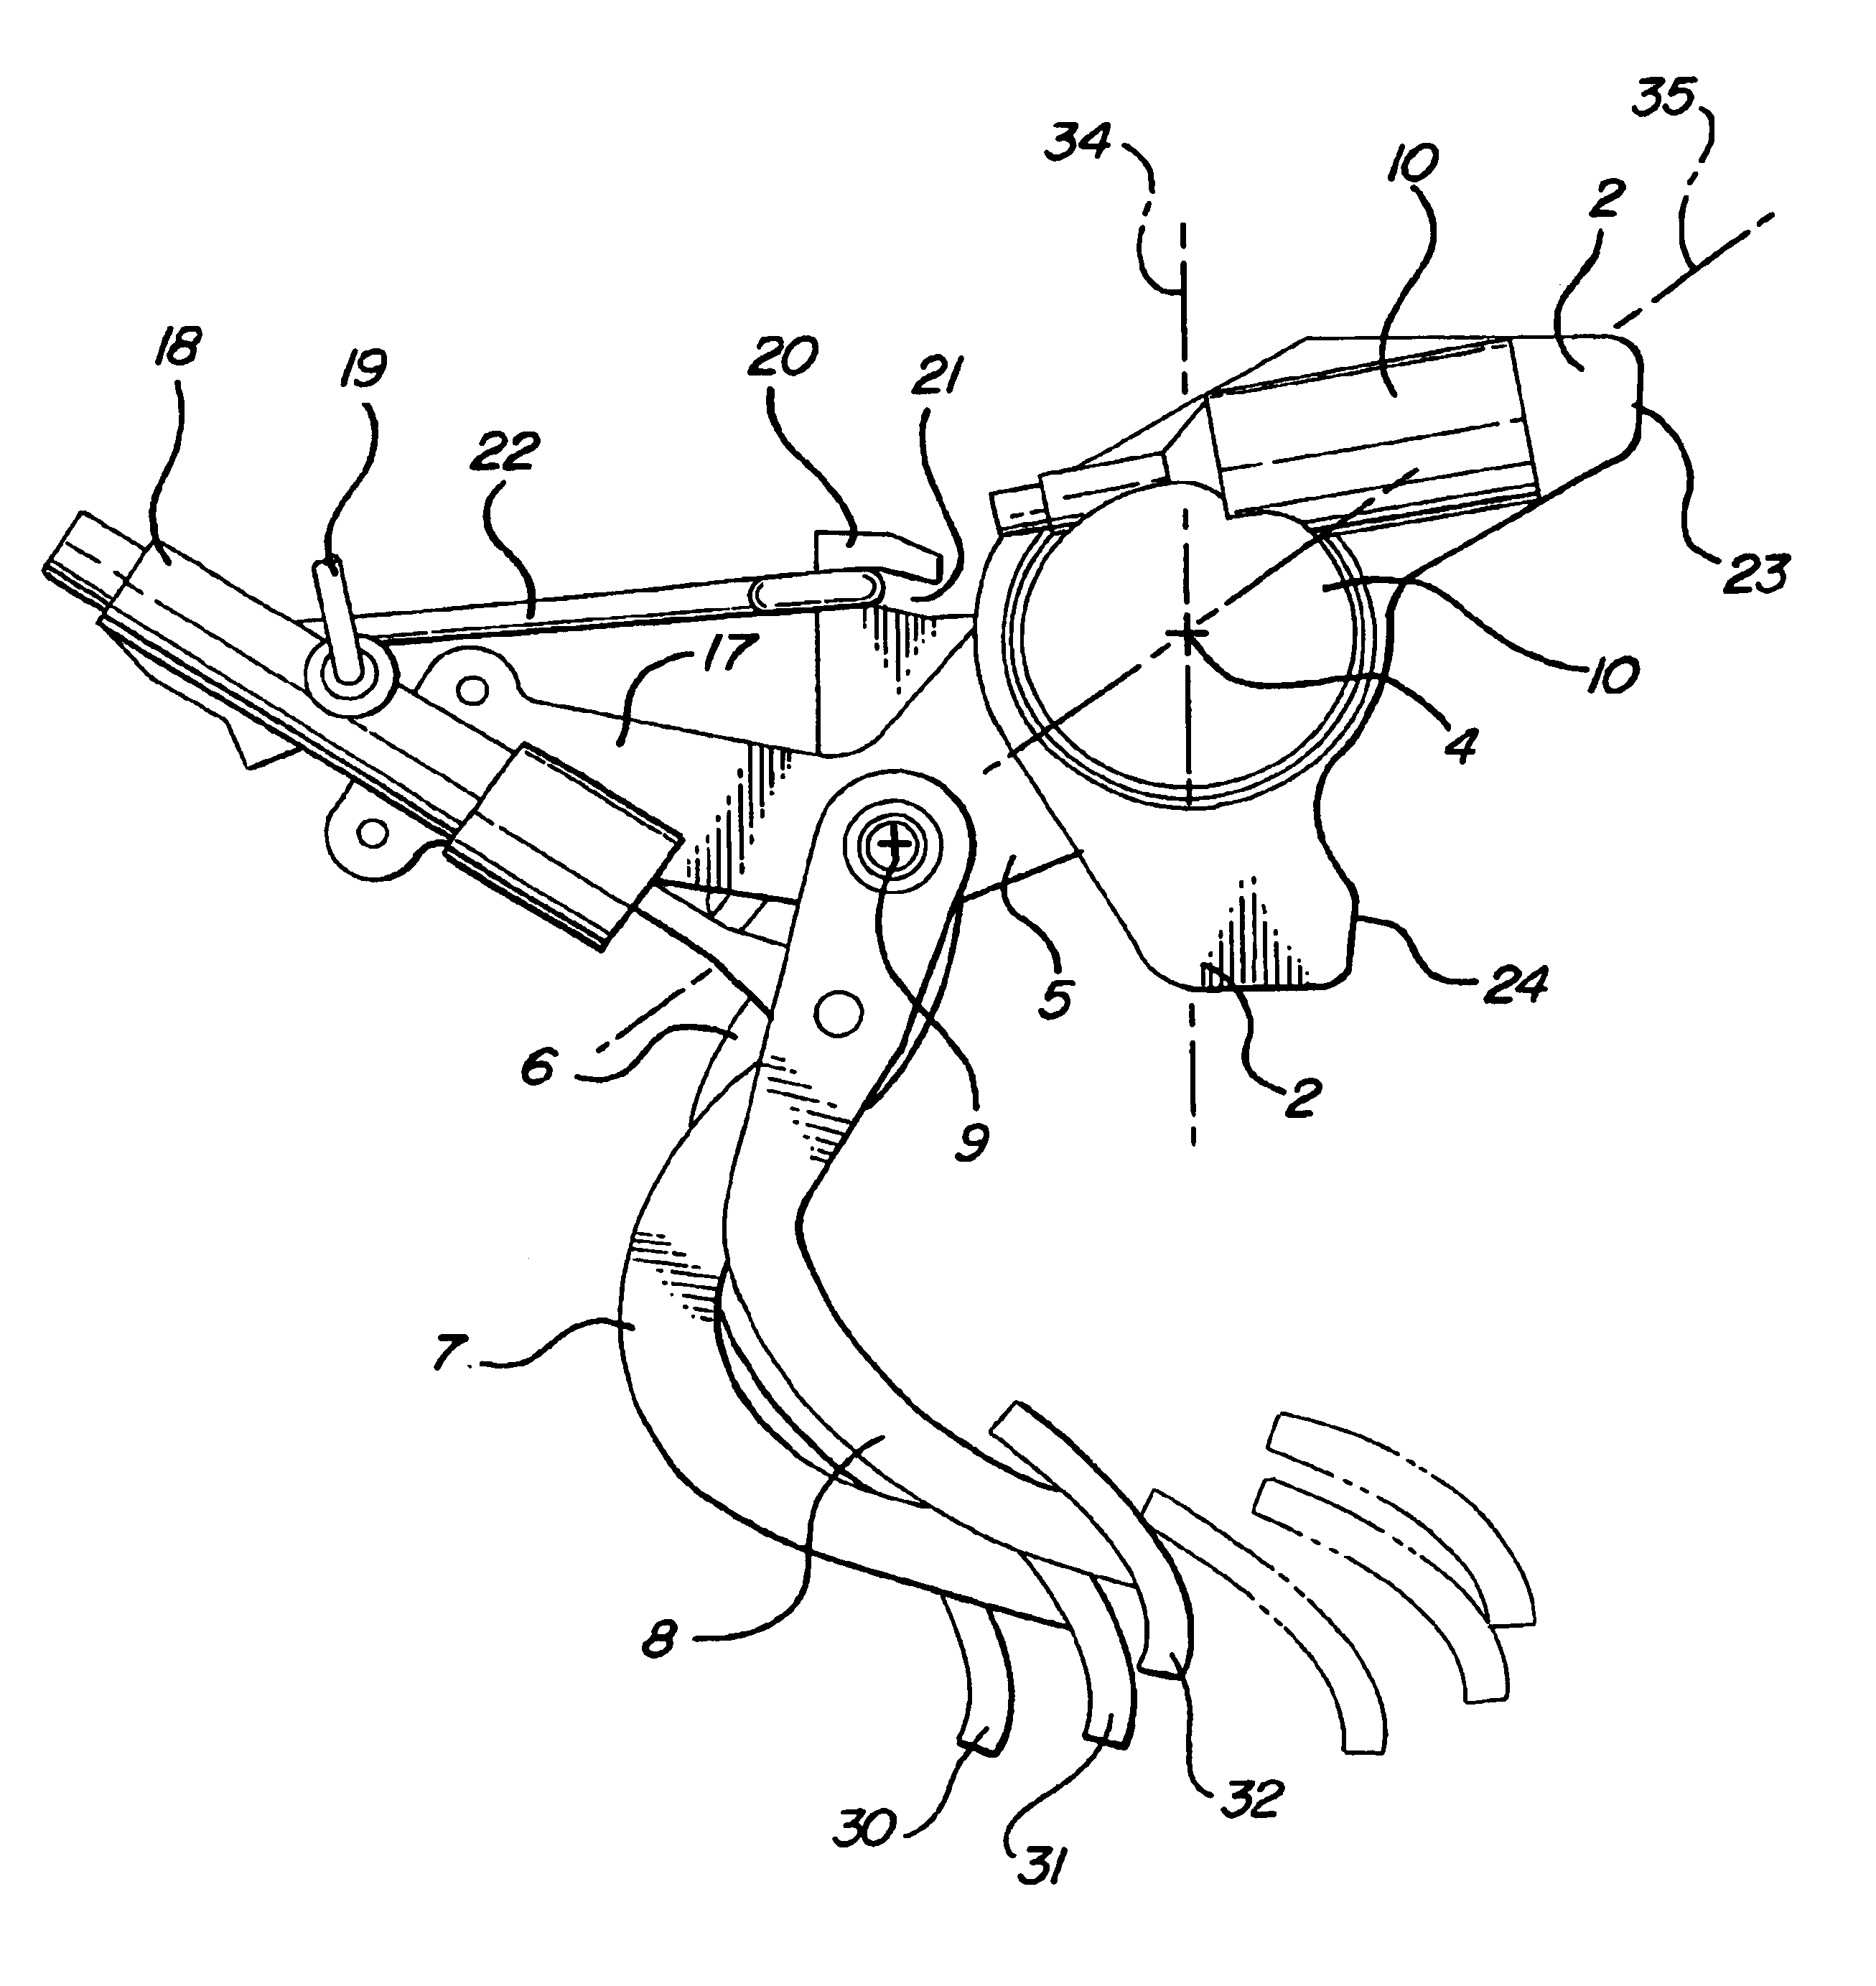 1954 Bel Air Wiring Diagram Get Free Image About 56 Mercury Montclair Ford Ignition